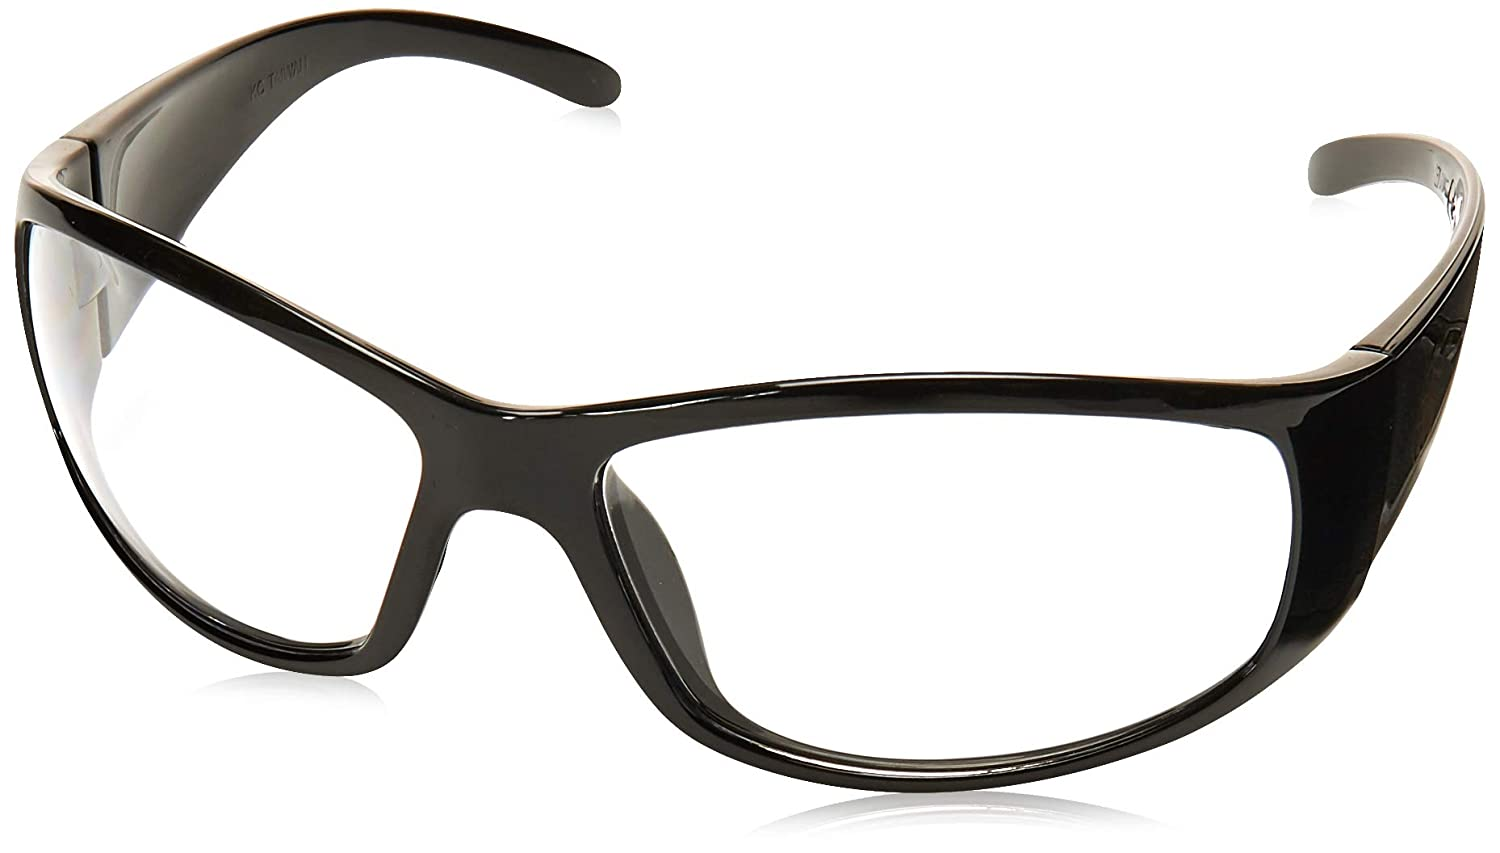 Smith and Wesson Safety Glasses (21302), Elite Safety Glasses, Clear Anti-Fog Lenses with Black Frame, 12 Pairs / Case